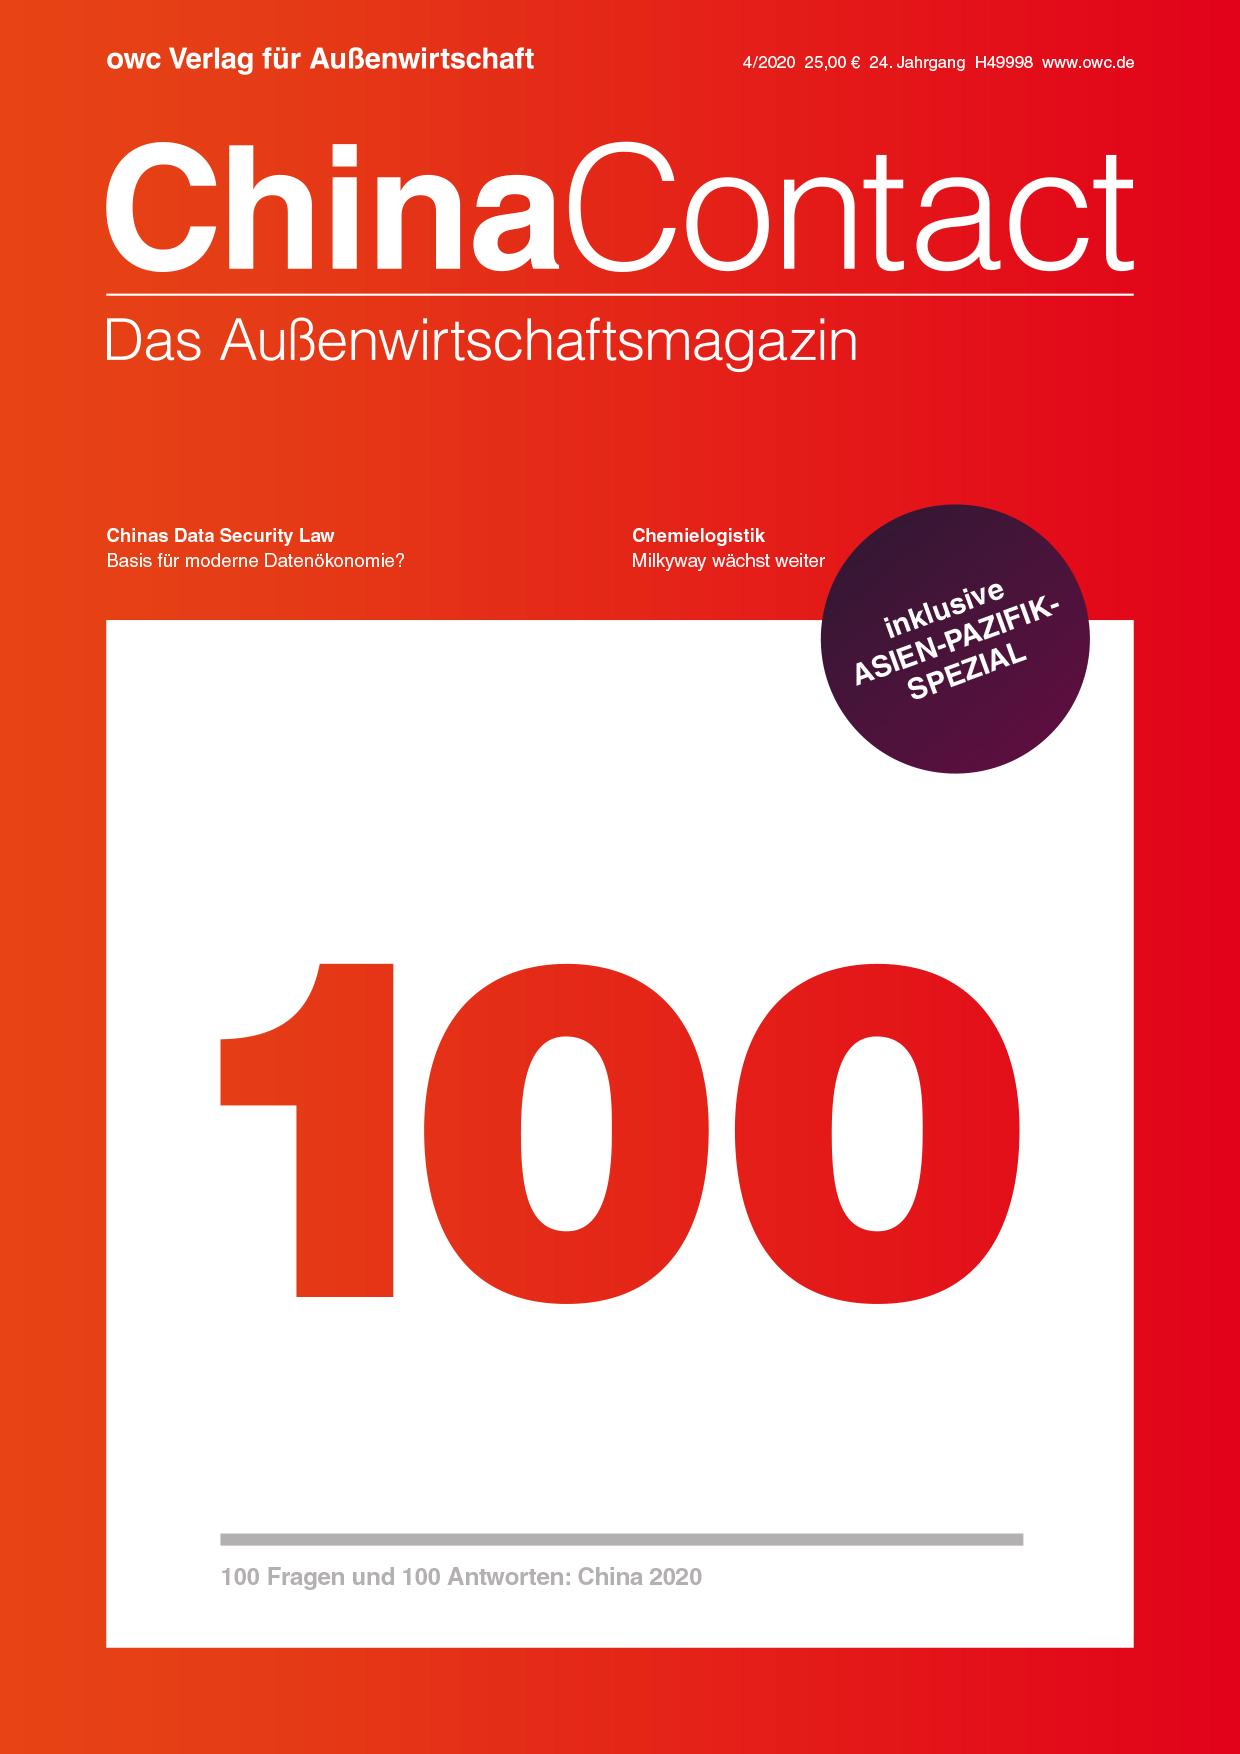 https://owc.de/wp-content/uploads/2020/09/CC_4-2020_cover.jpg